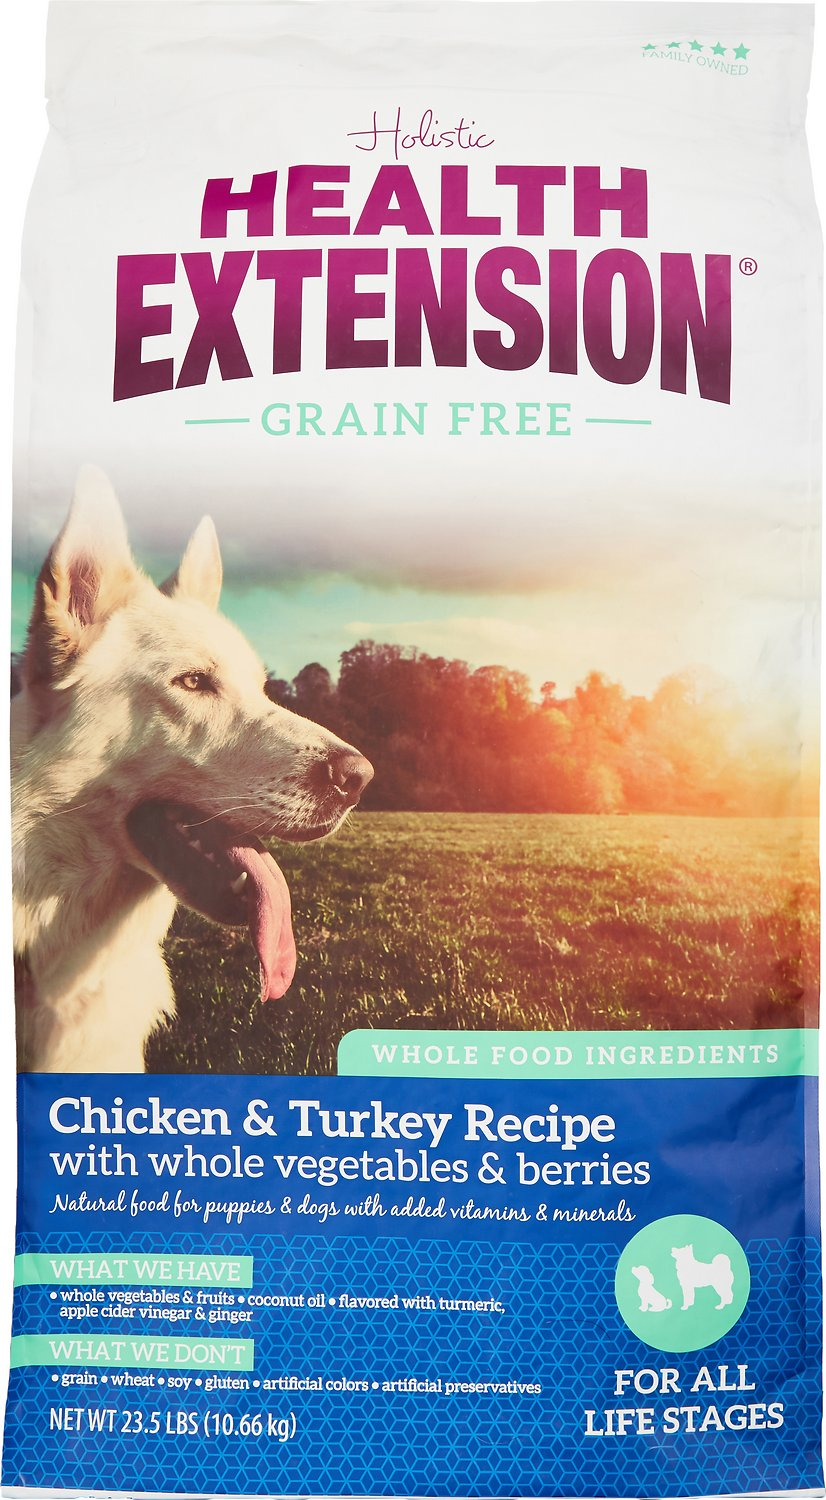 Health Extension Grain-Free Chicken & Turkey Recipe Dry Dog Food Image